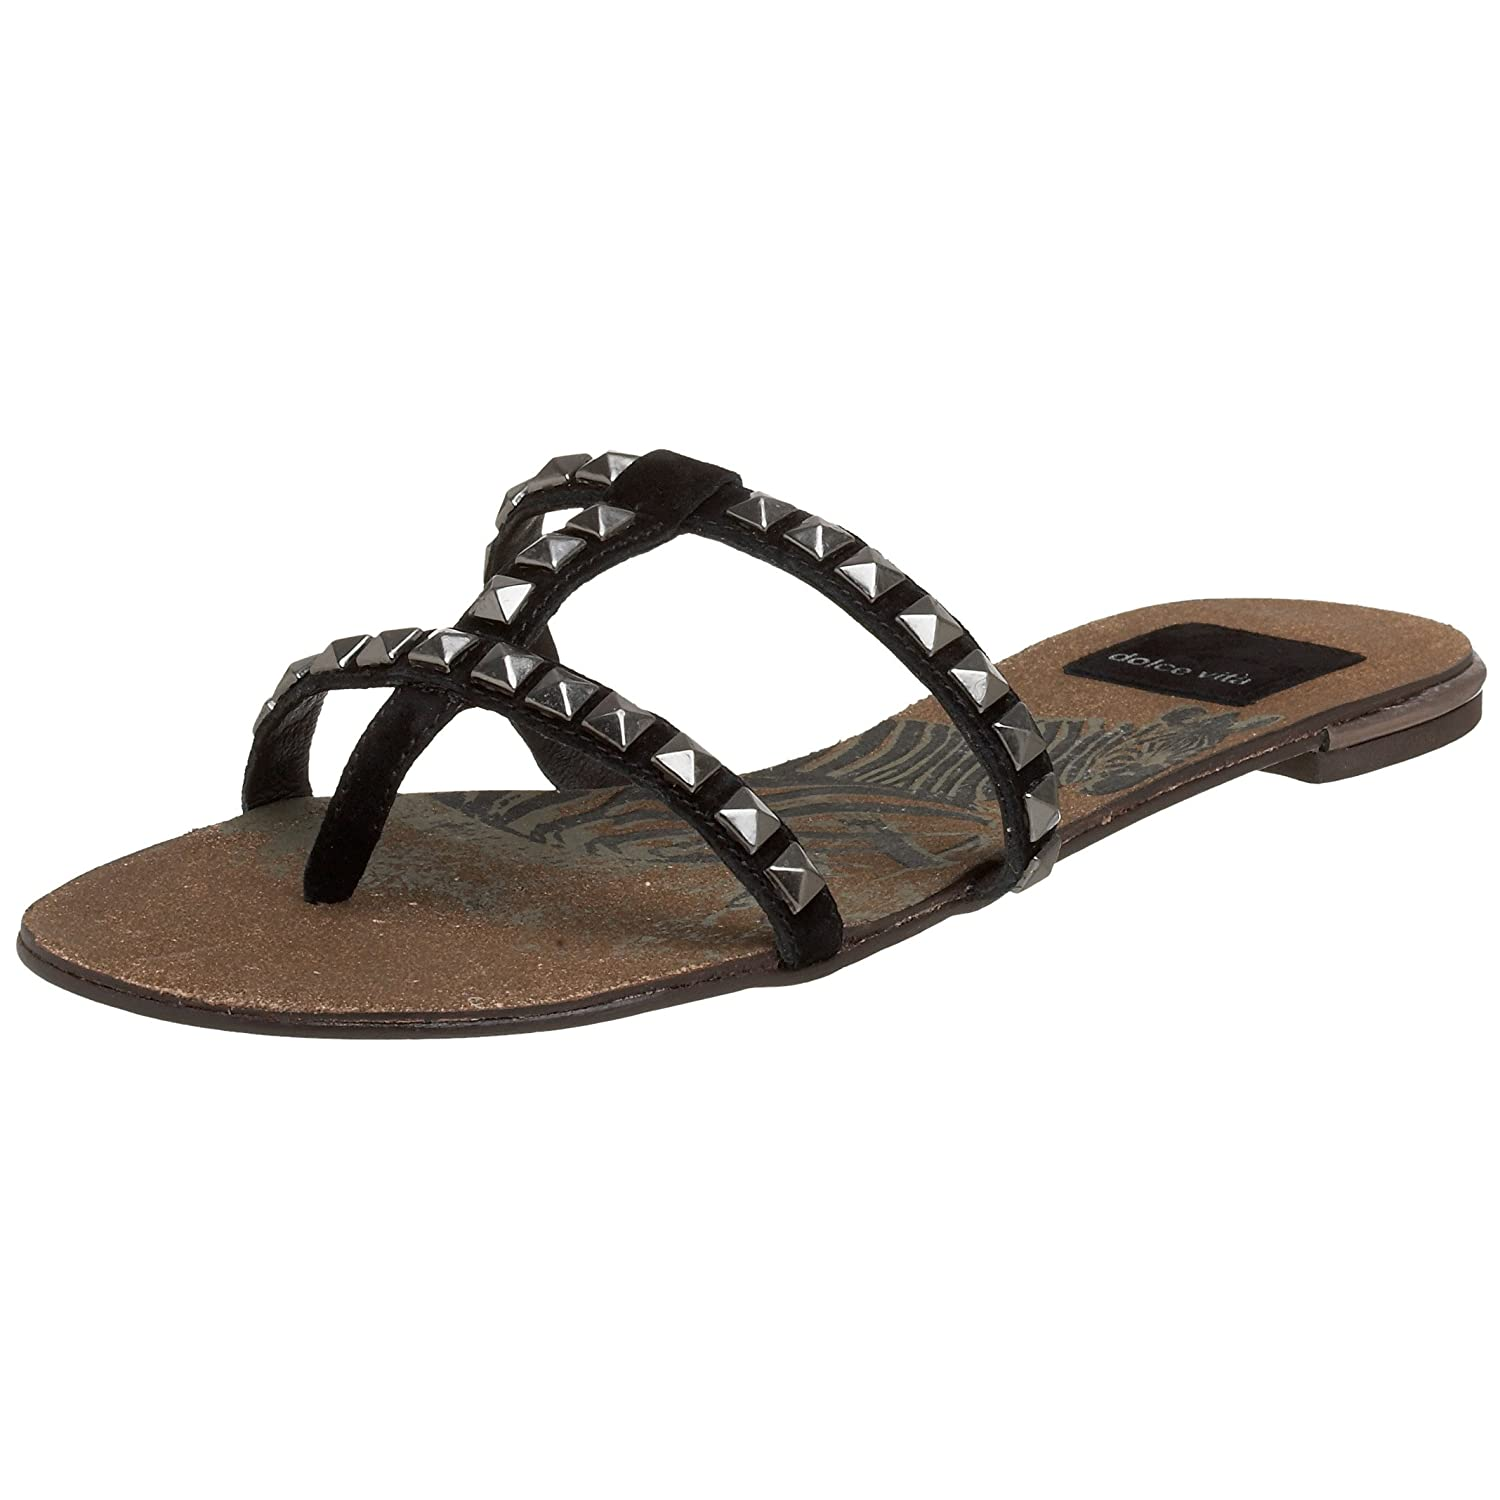 Dolce Vita Bo Sandal - Free Overnight Shipping & Return Shipping: Endless.com